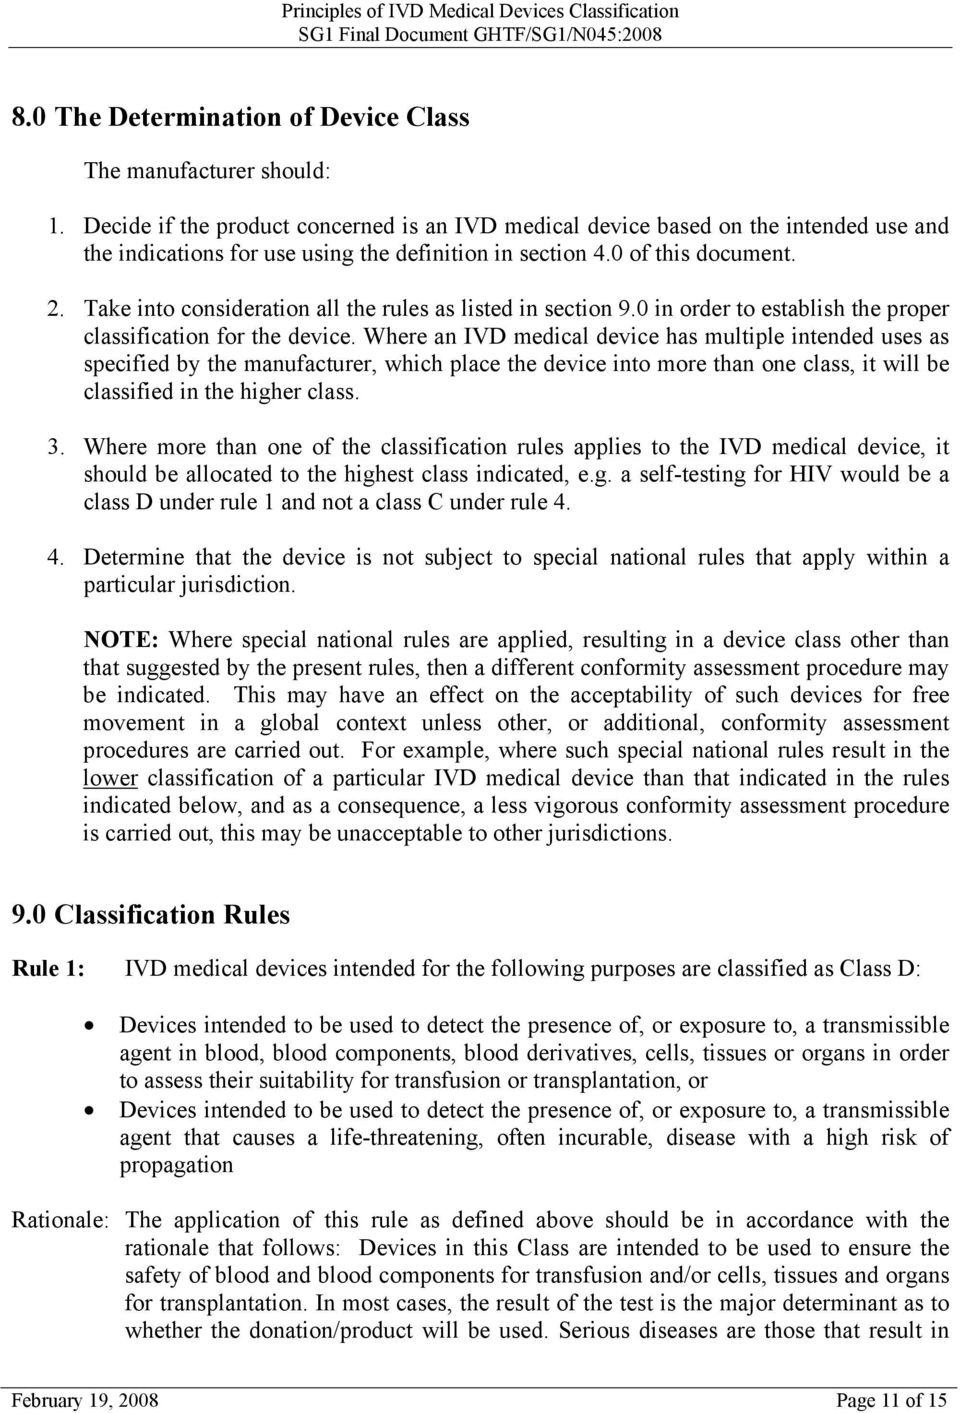 Take into consideration all the rules as listed in section 9.0 in order to establish the proper classification for the device.